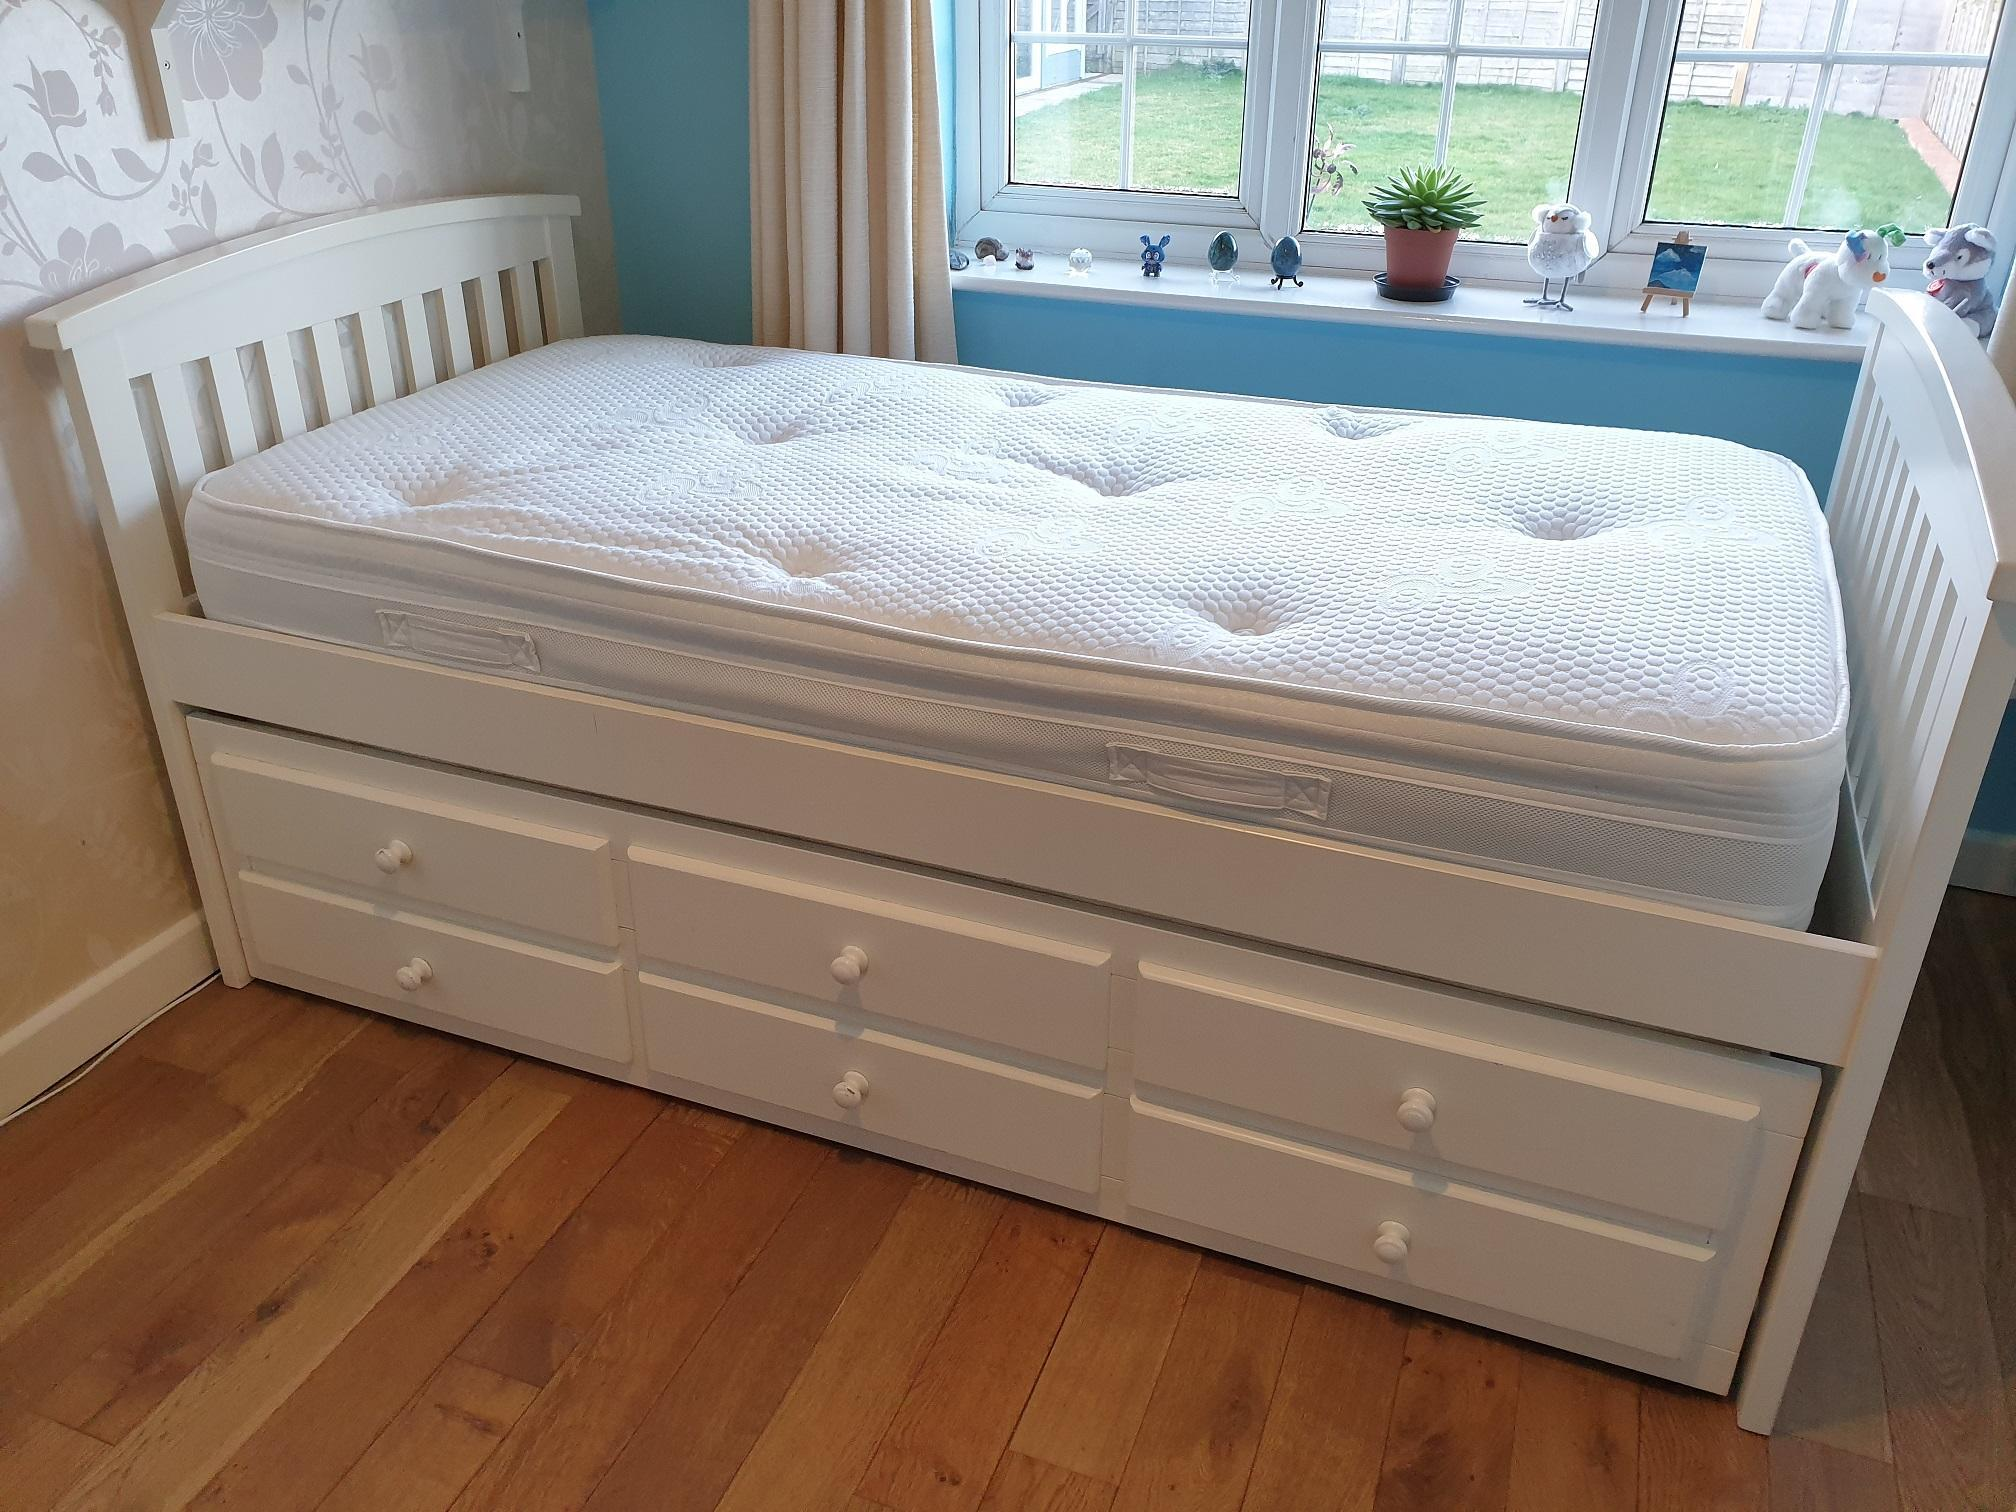 M&S white wooden single cabin bed with truckle bed